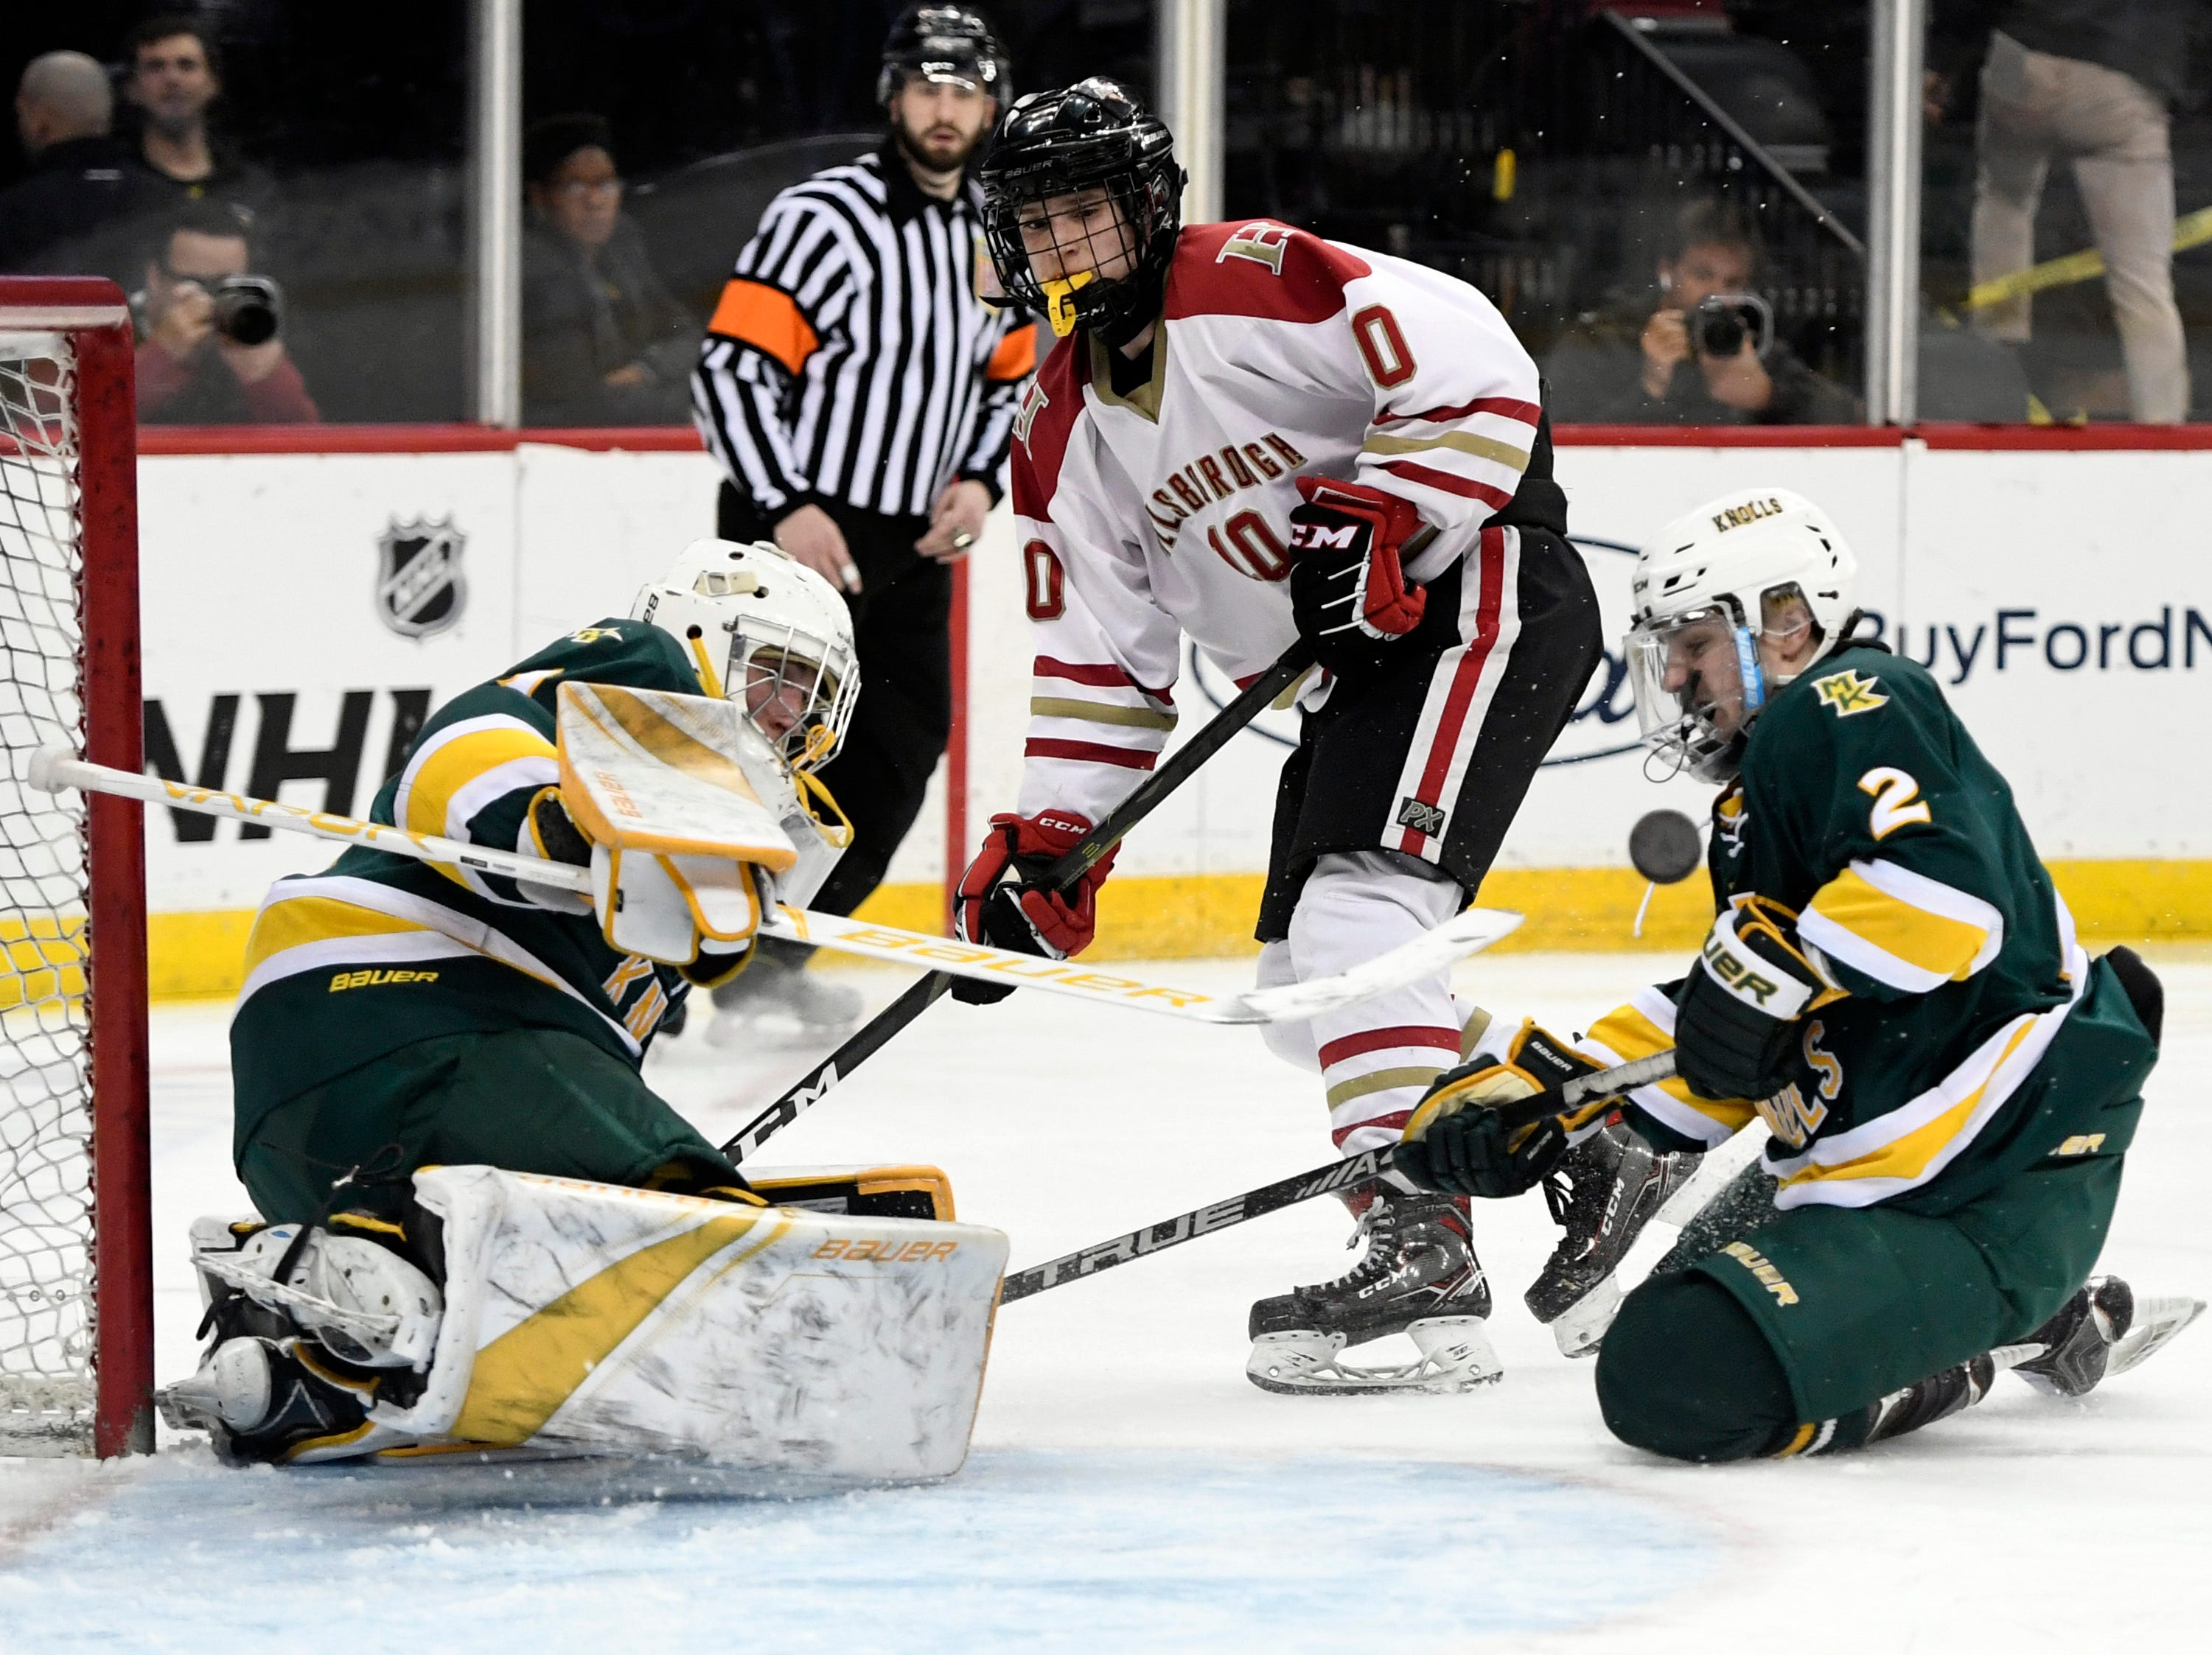 Morris Knolls/Hills goalie Ty Franchi blocks a shot by Hillsborough's Jude Kurtas (10) in the third period. Morris Knolls/Hills defeats Hillsborough 6-1 in the Public A ice hockey final at the Prudential Center on Monday, March 4, 2019, in Newark.